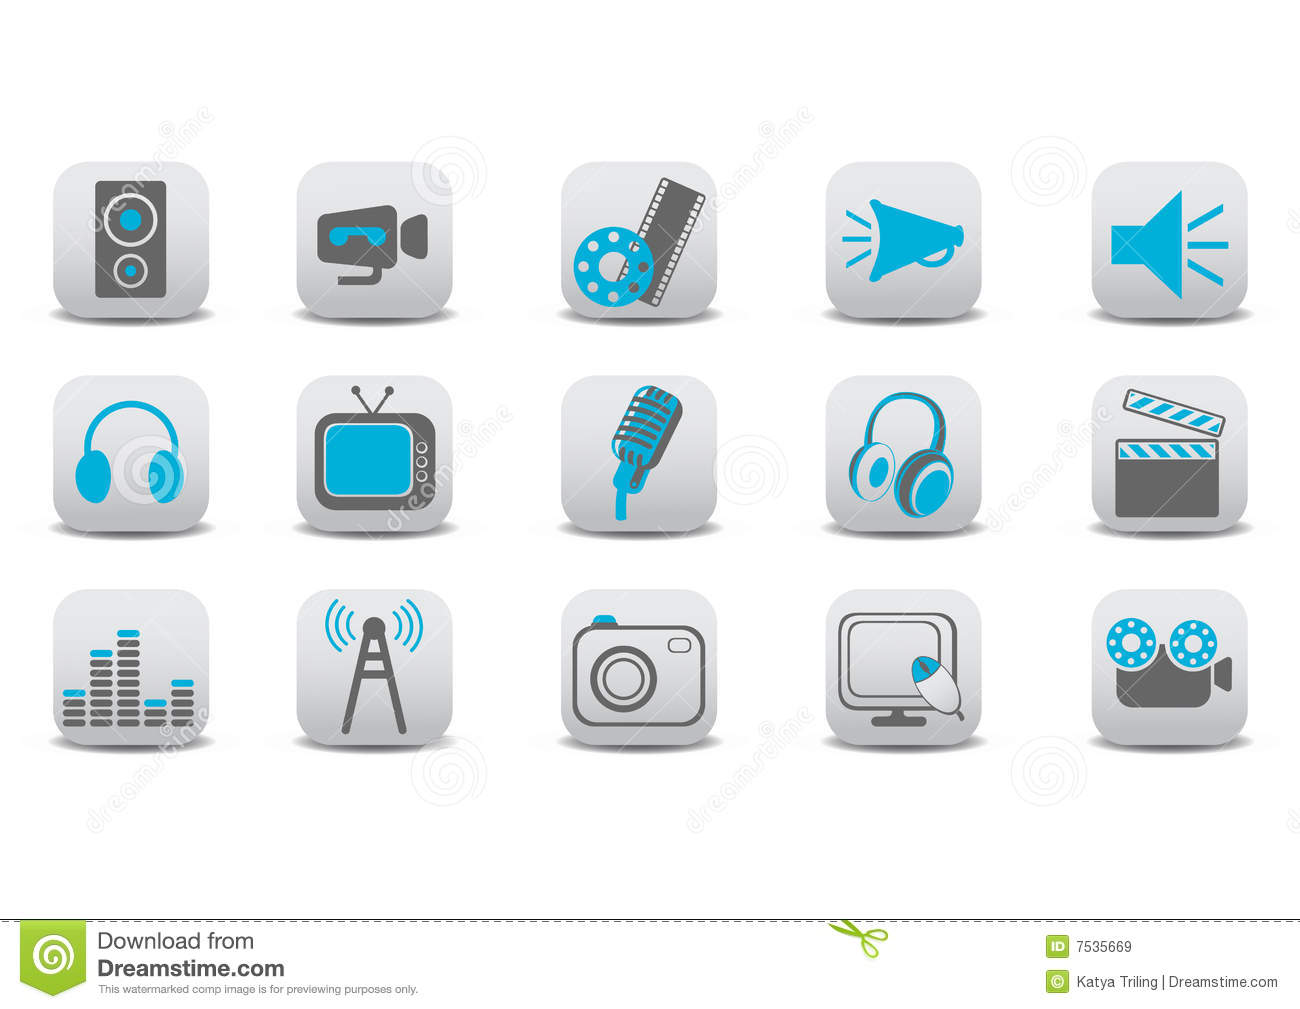 Video and audio icons